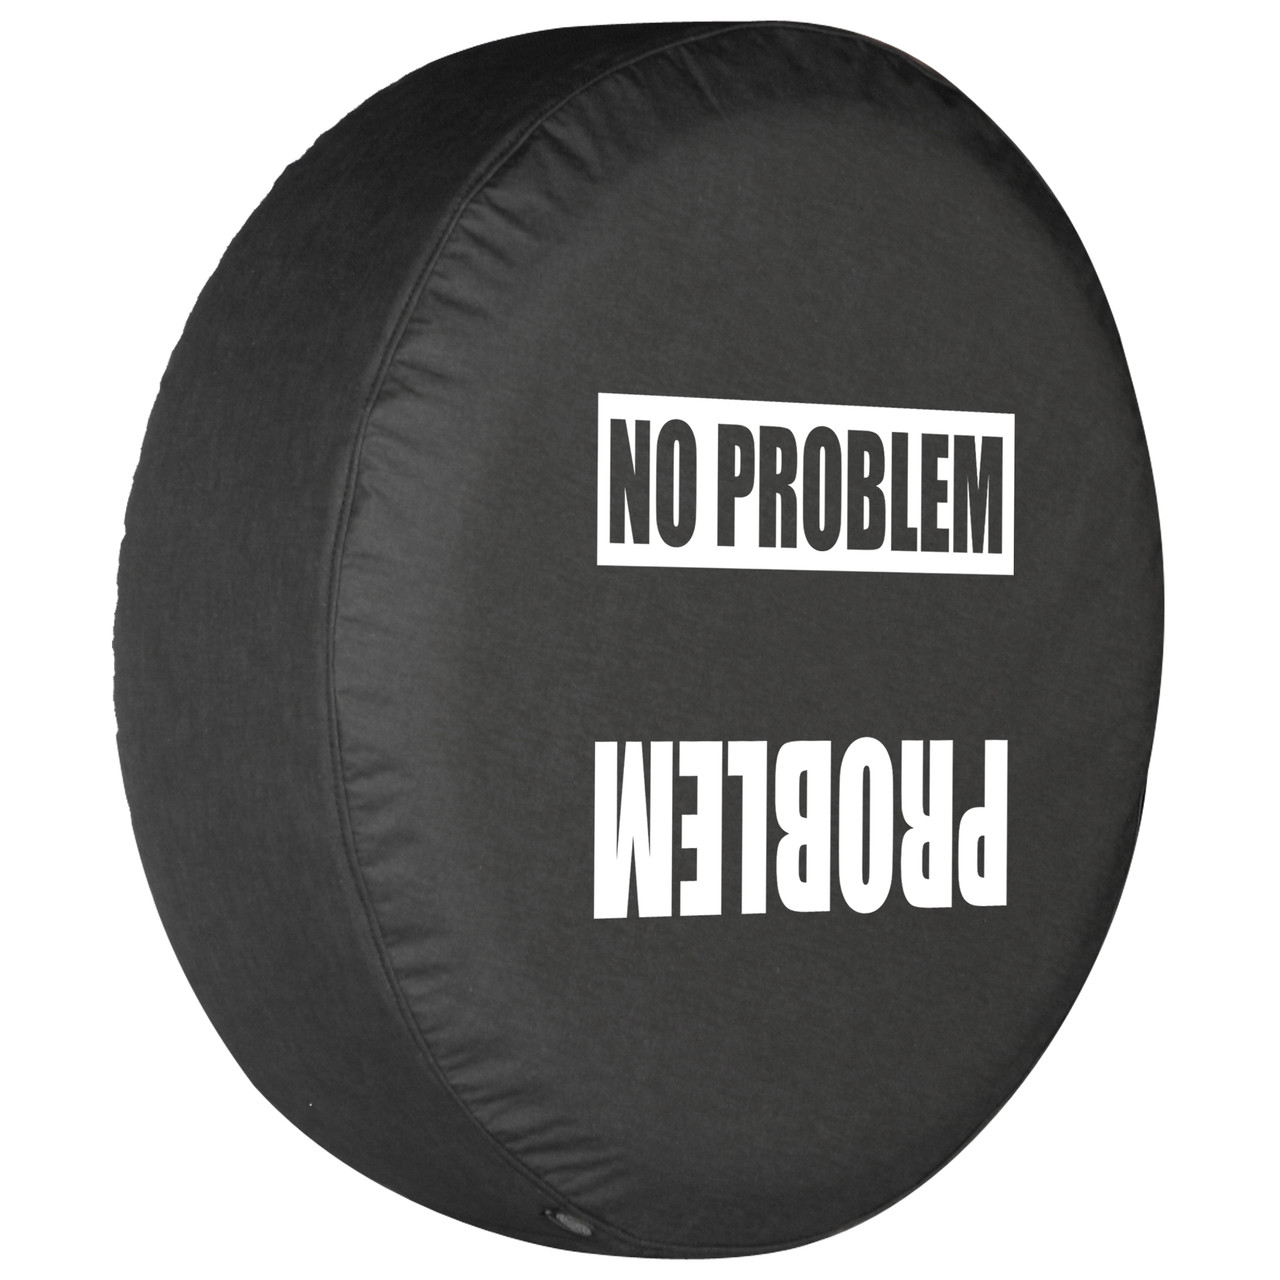 hight resolution of problem no problem soft denim vinyl tire cover by boomerang